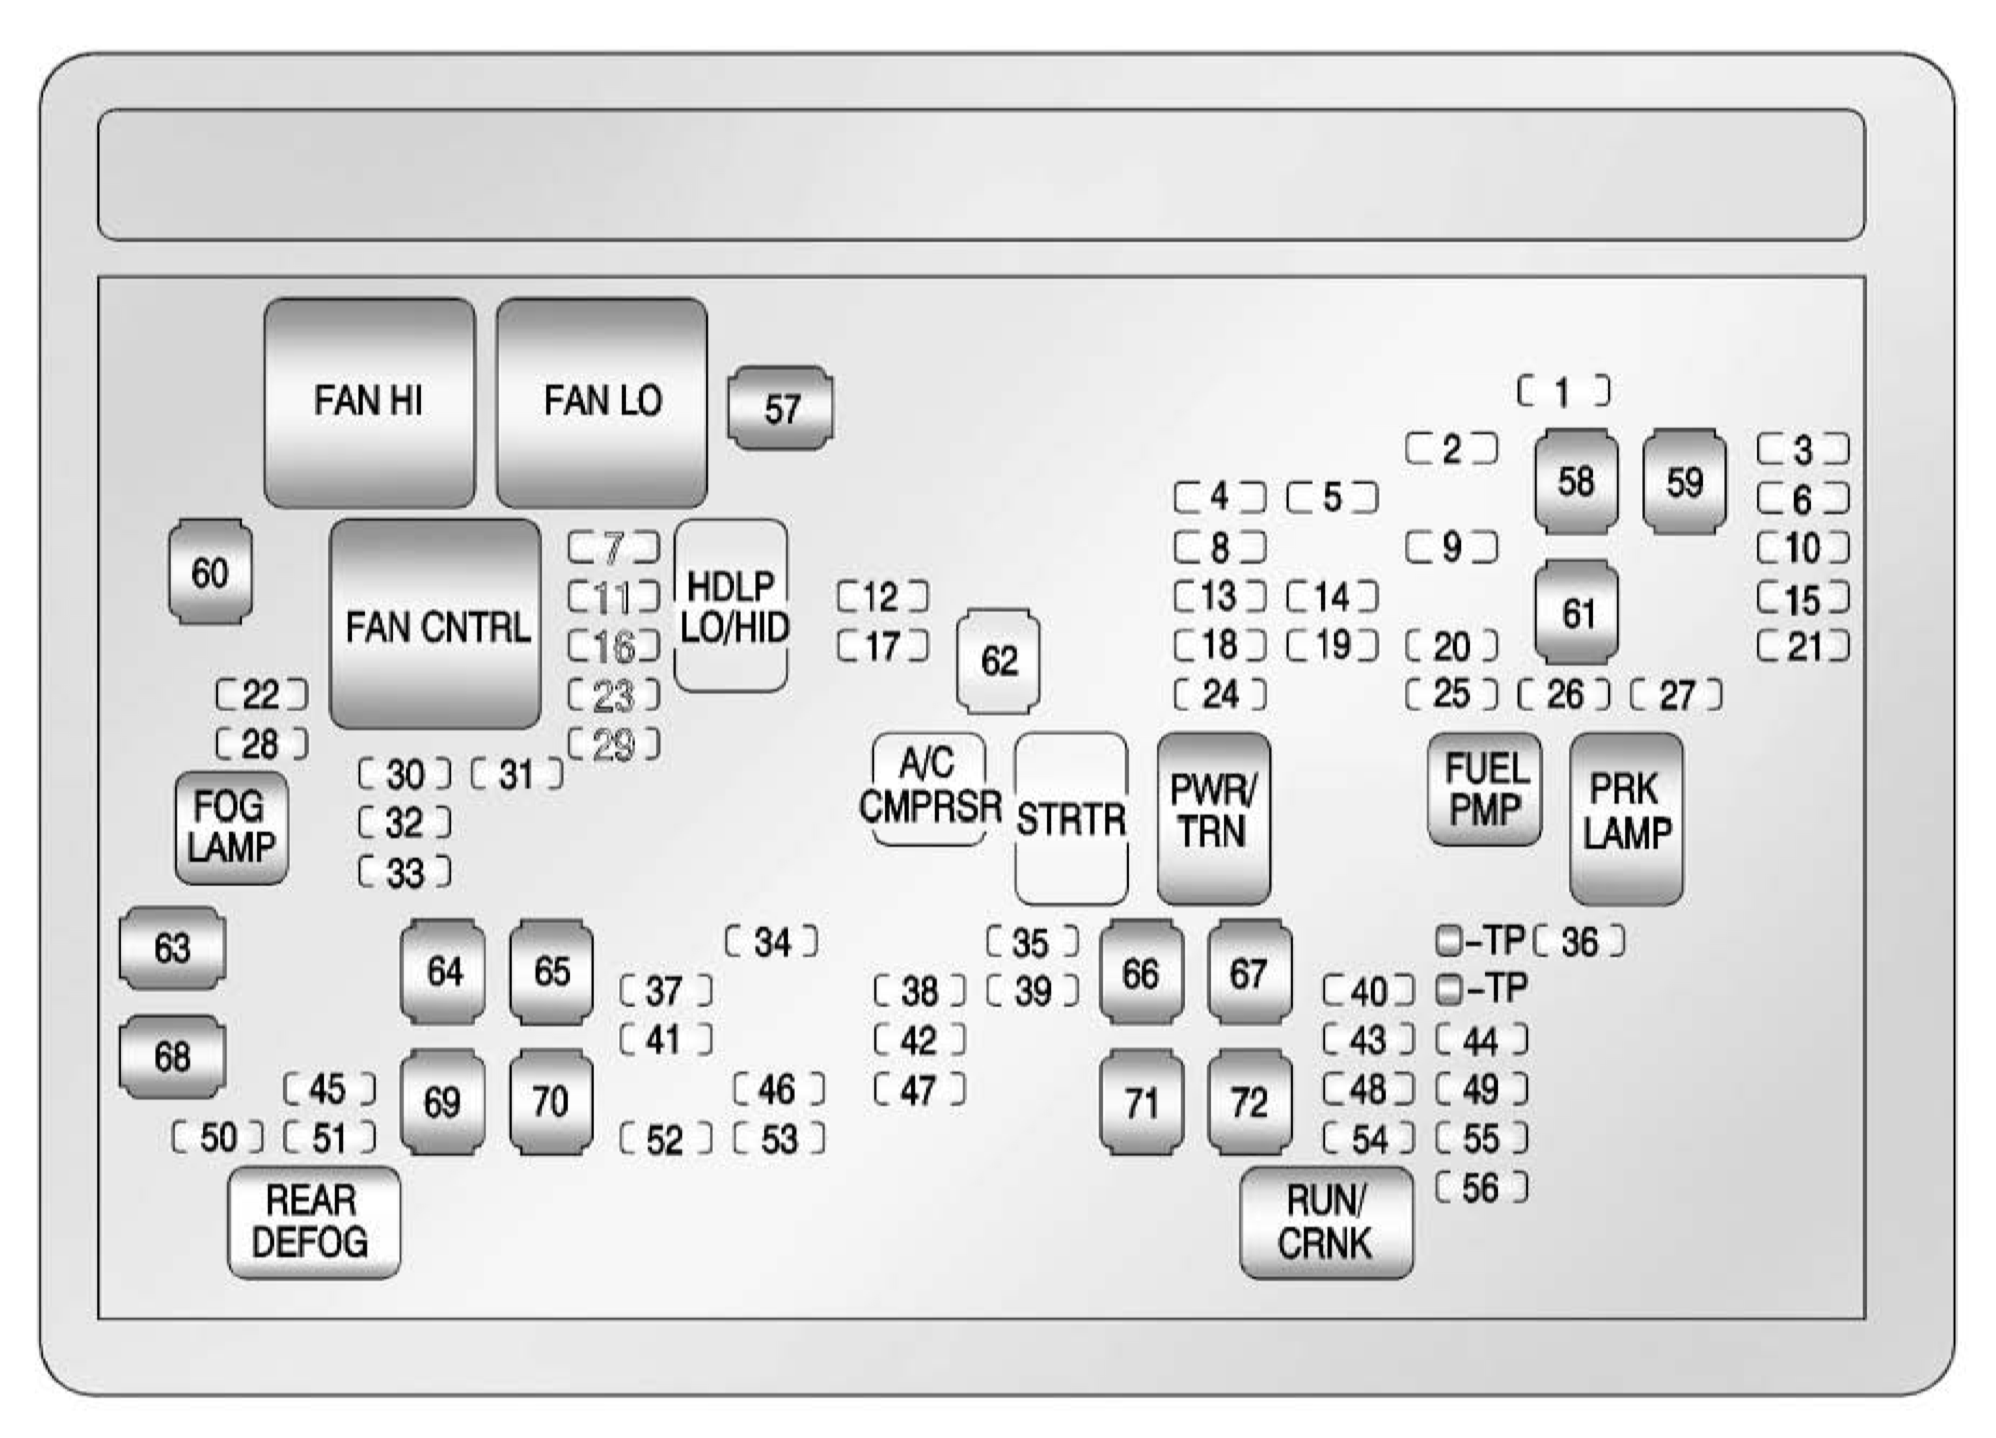 2014 chevy tahoe fuse box diagram 1999 chevy tahoe fuse box diagram